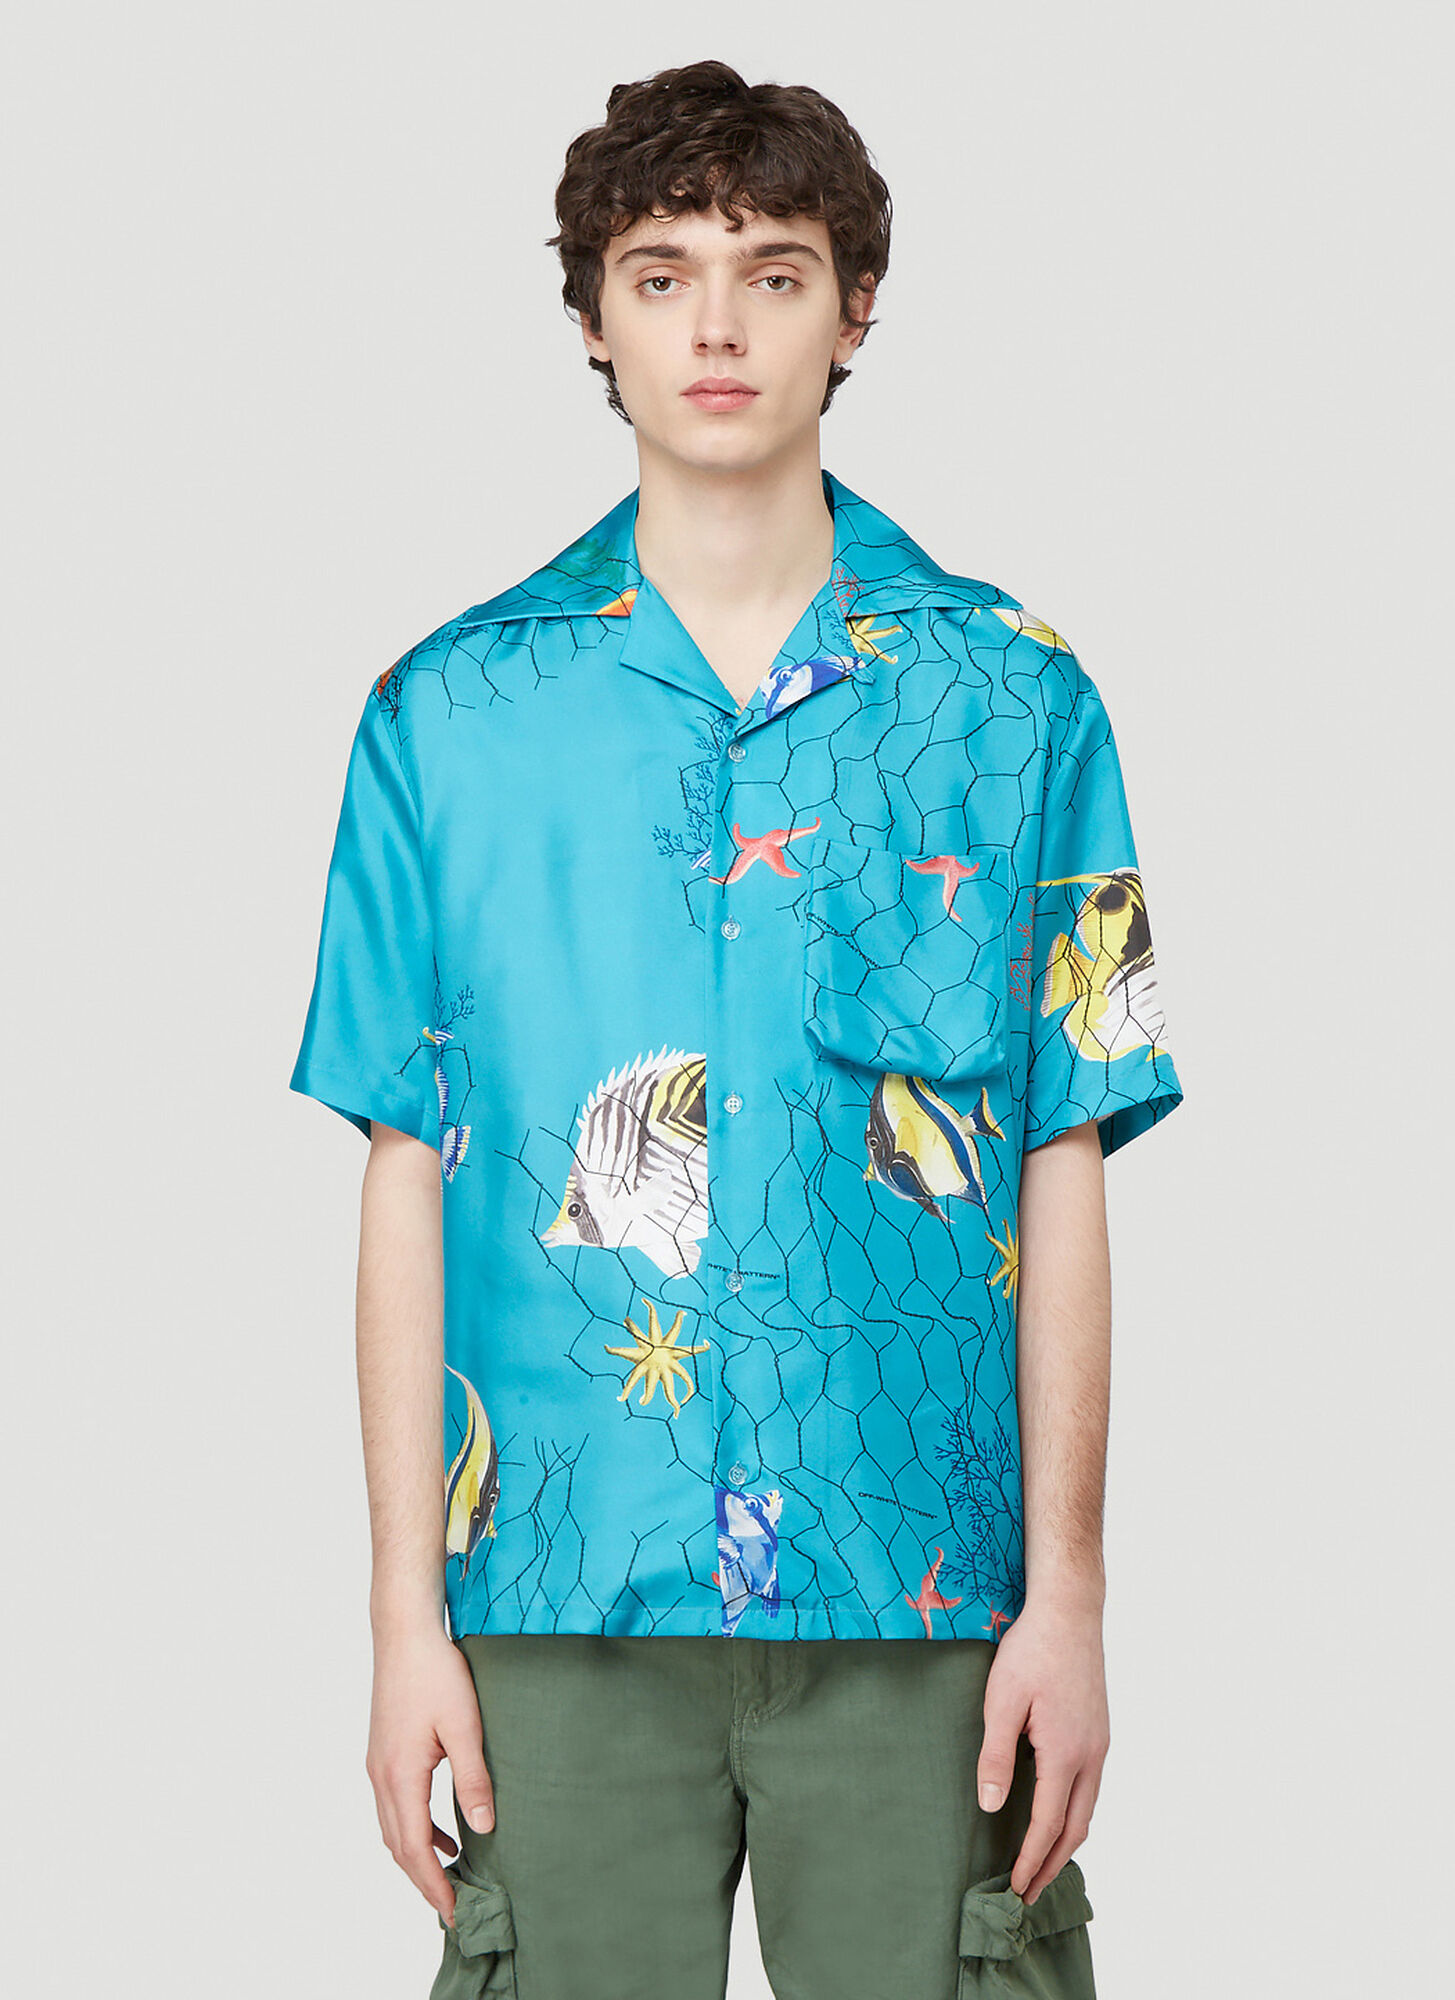 Off-White Fish-Net Silk Shirt in Blue size L